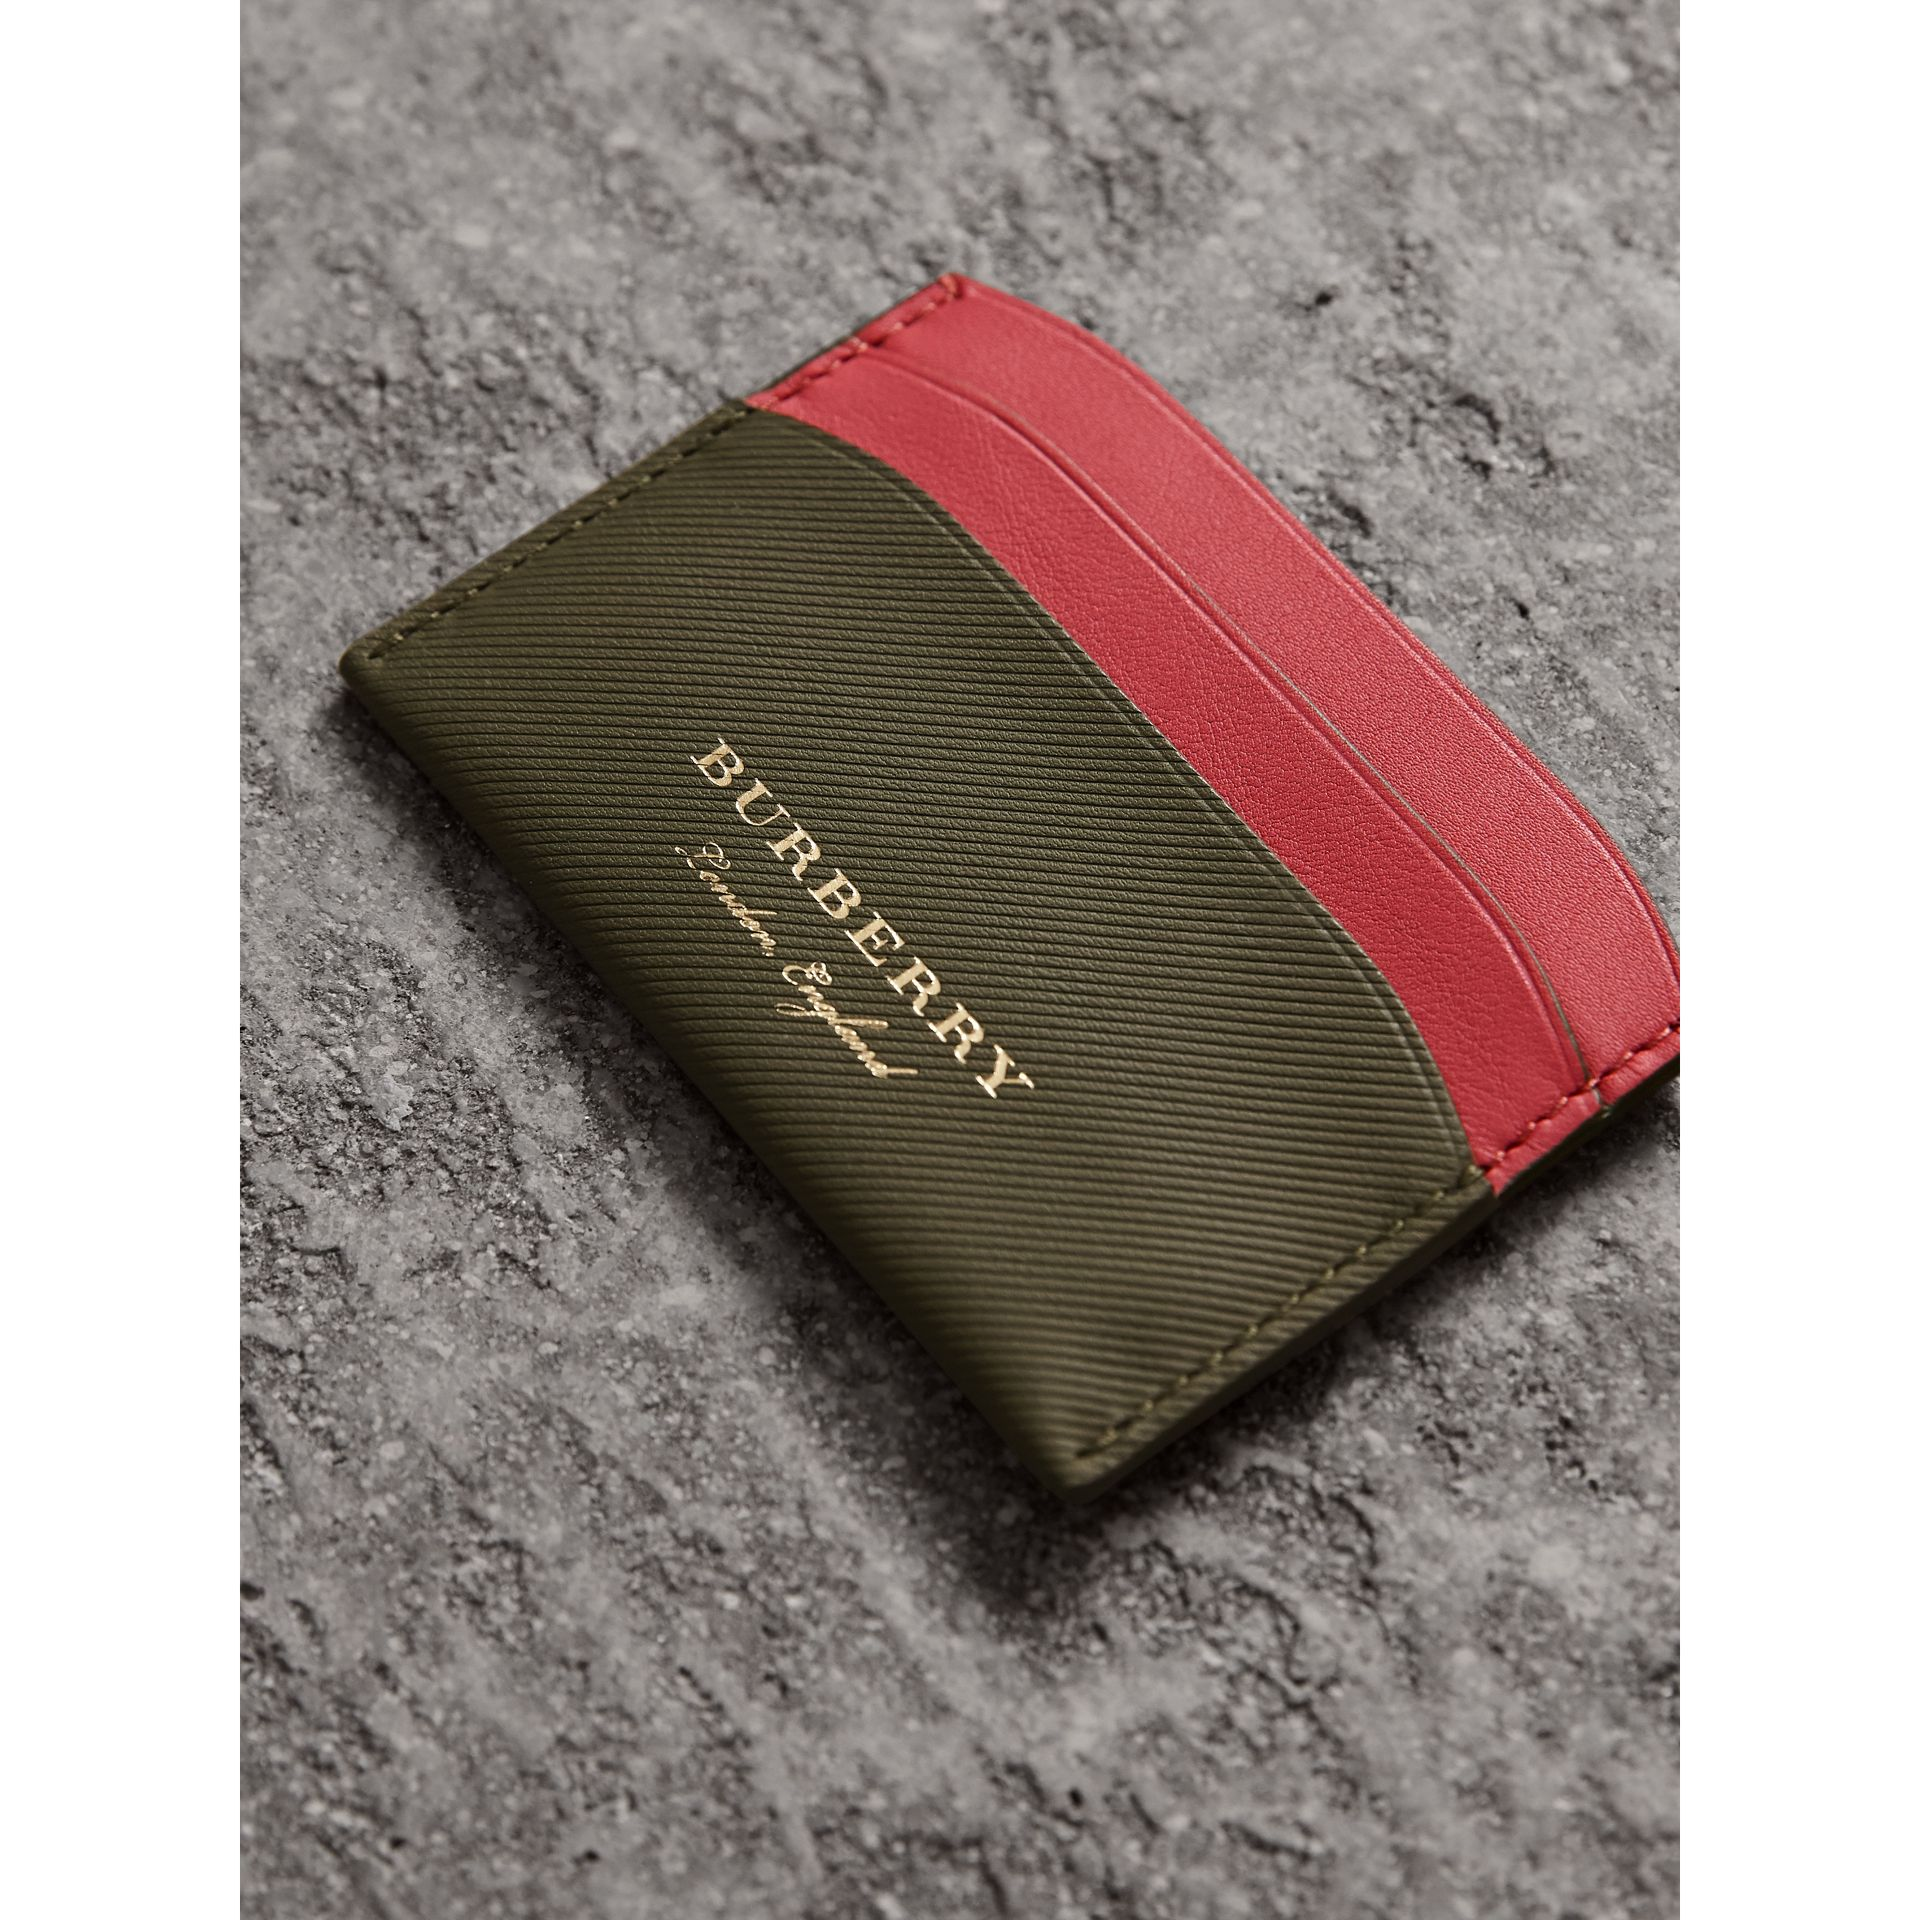 Two-tone Trench Leather Card Case in Mss Green/ Blsm Pink - Women | Burberry - gallery image 1